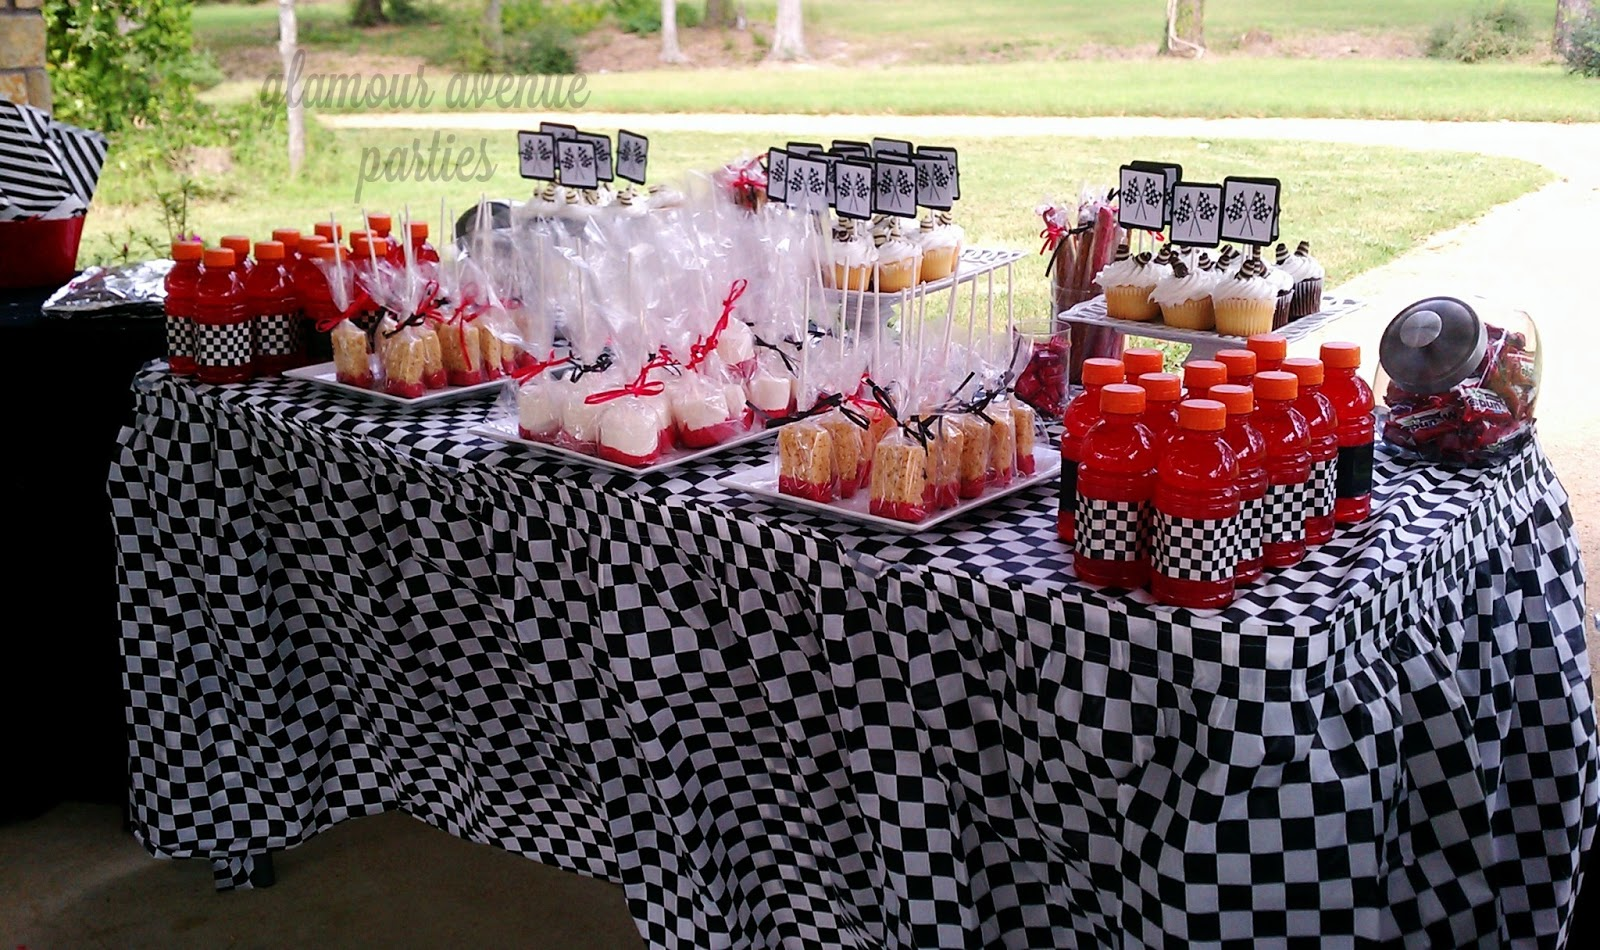 Race Car Birthday Party: Glamour Avenue Parties The Blog.: Custom Race Car Party I